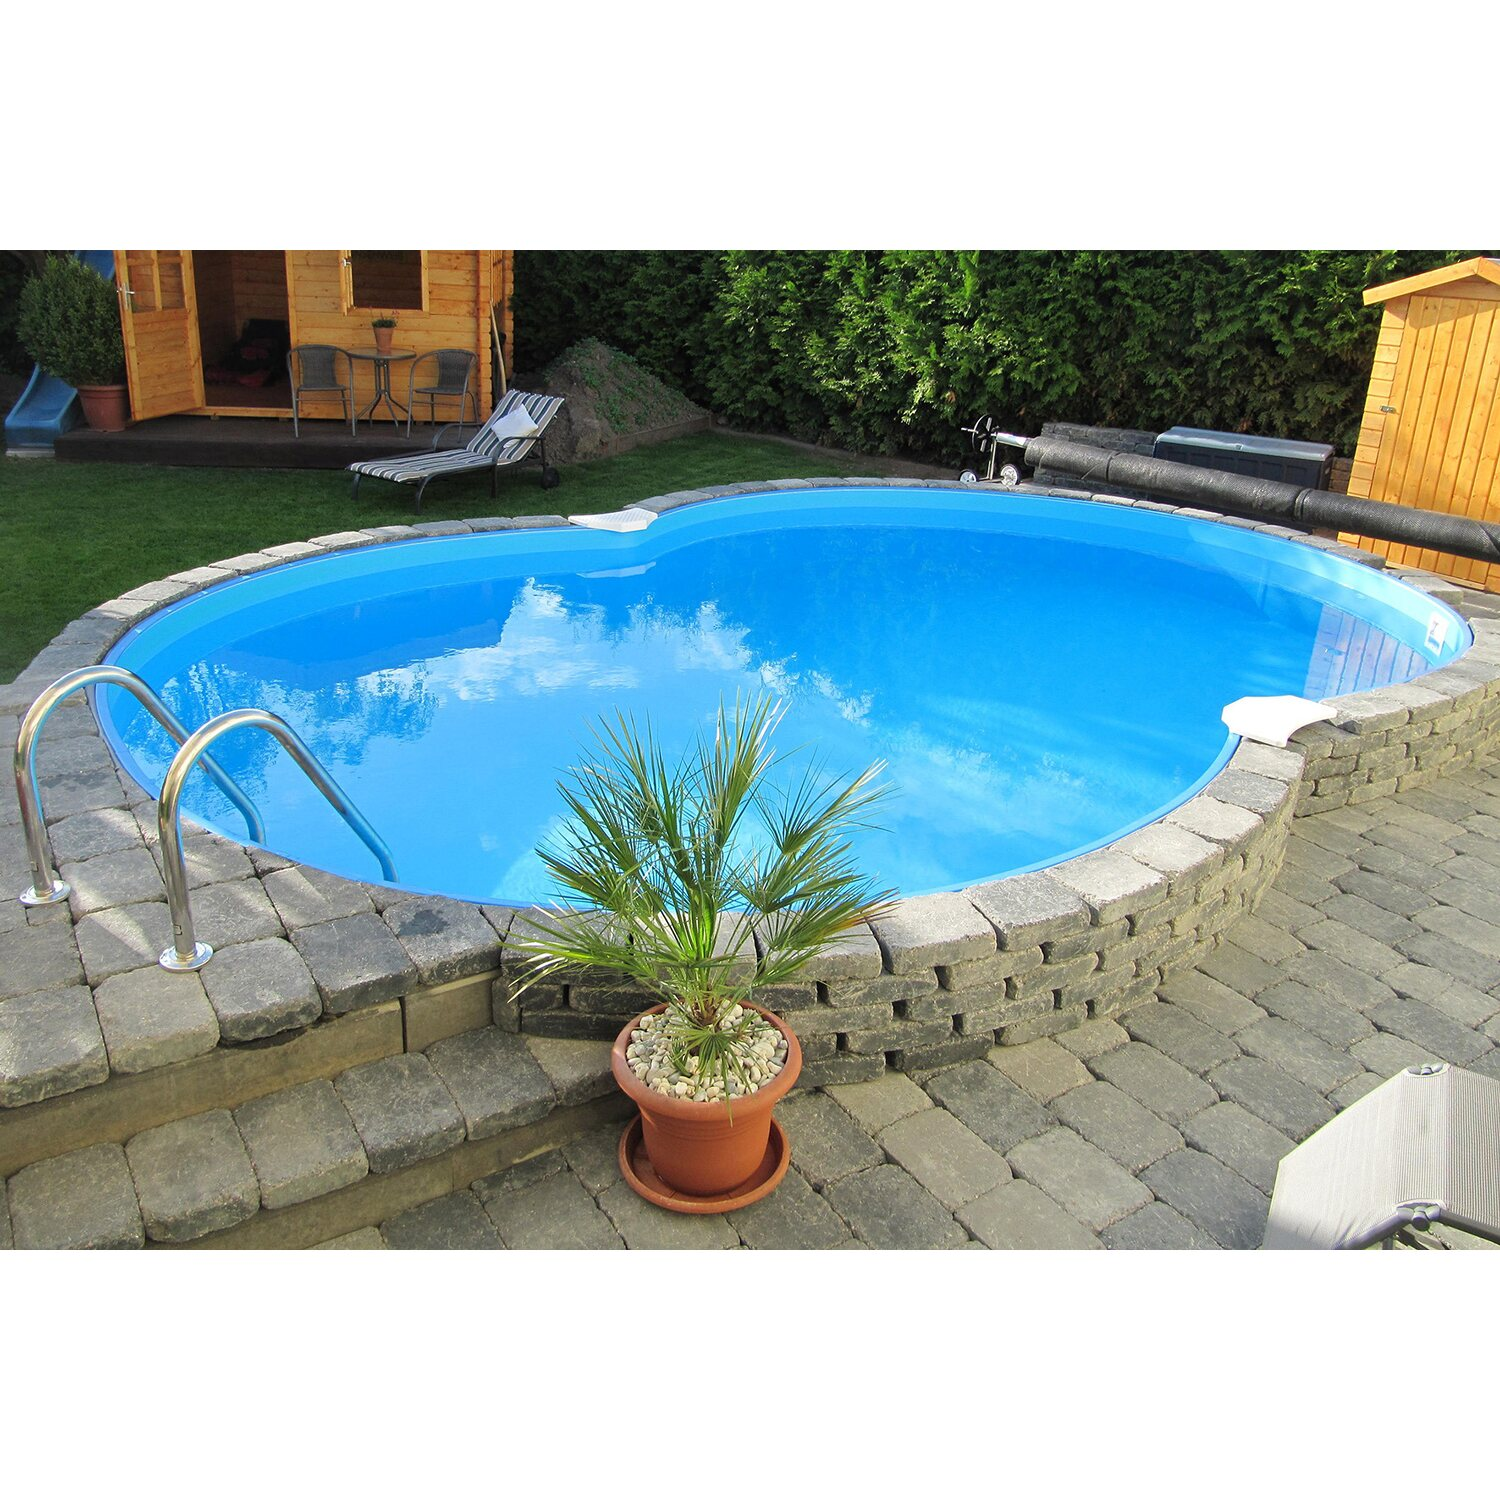 Pool set cannes halbhoch einbaubecken achtform 625 cm x for Abdeckplane pool obi